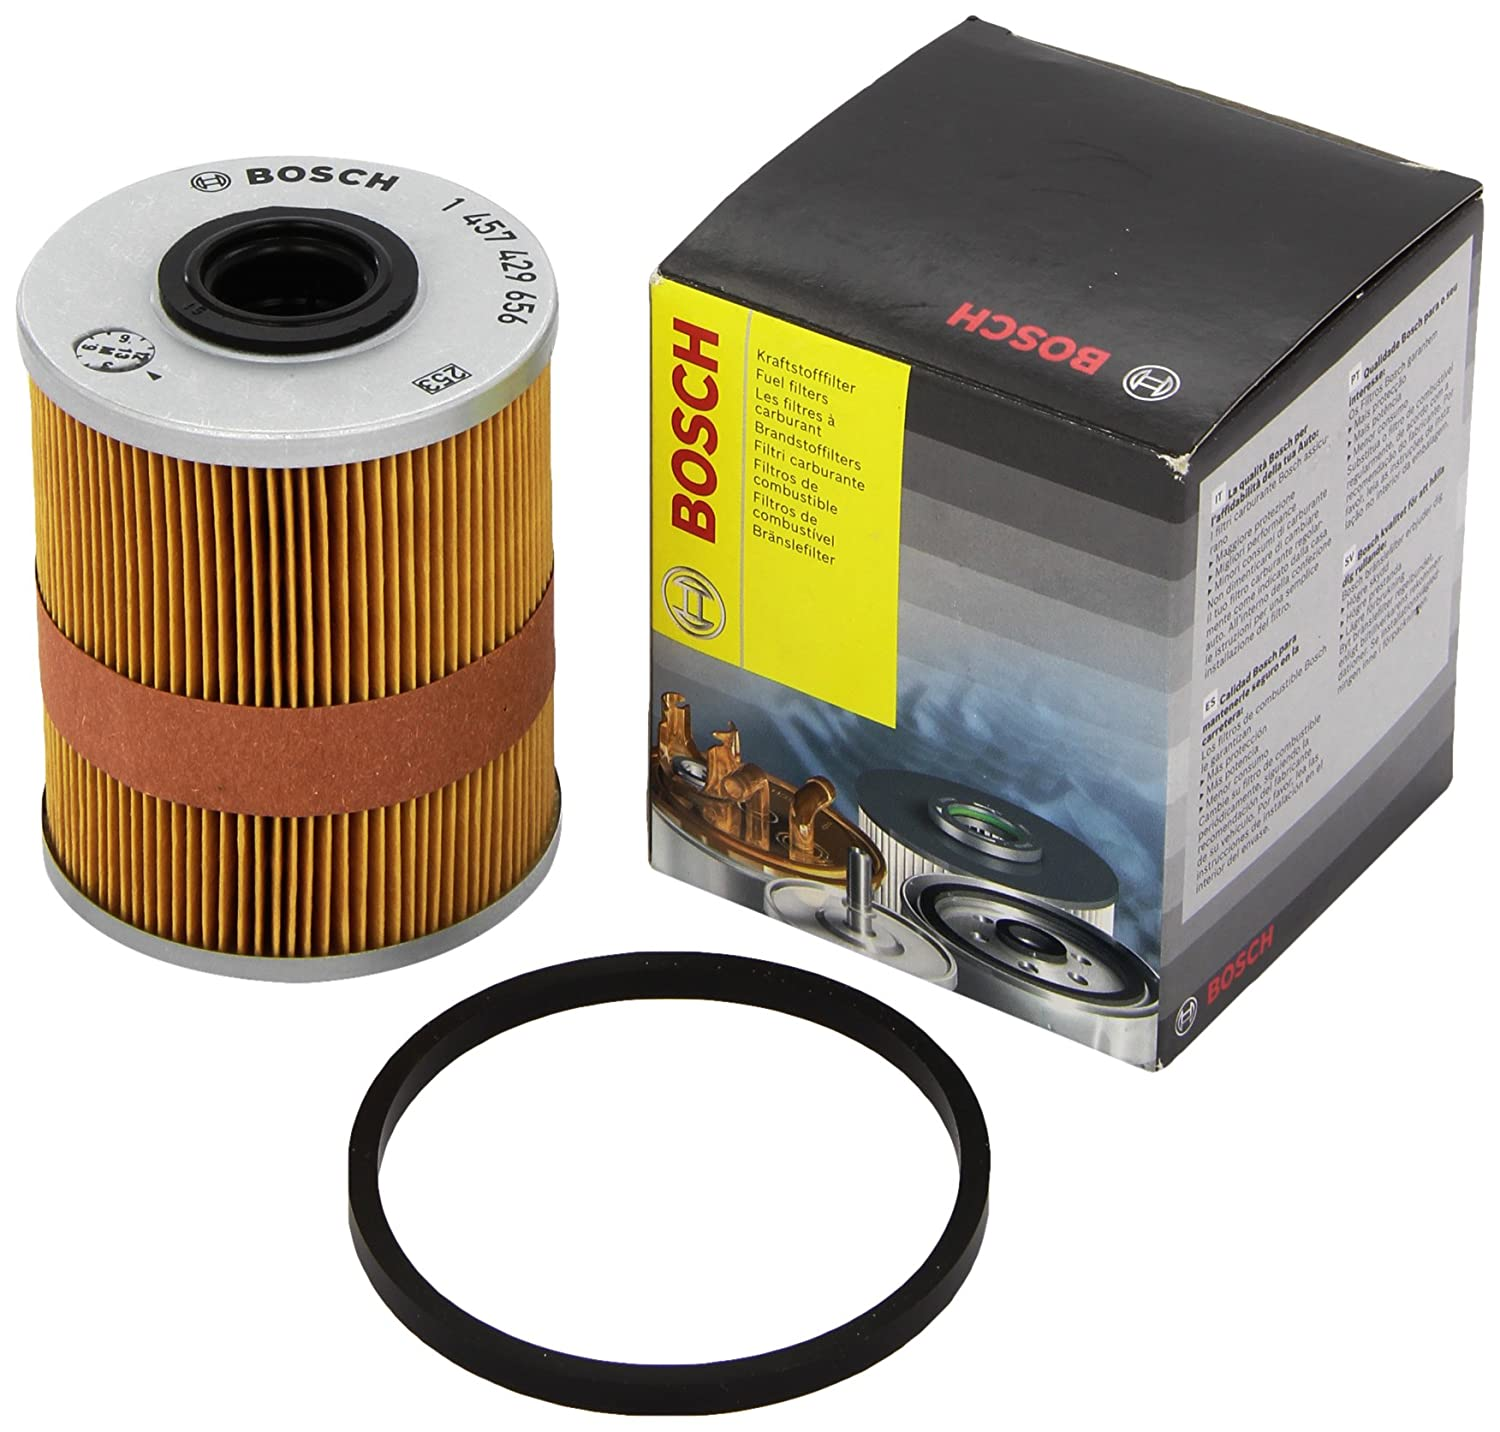 Opel Vectra C 2.0 DTI Genuine Fram Fuel Filter Service Replacement